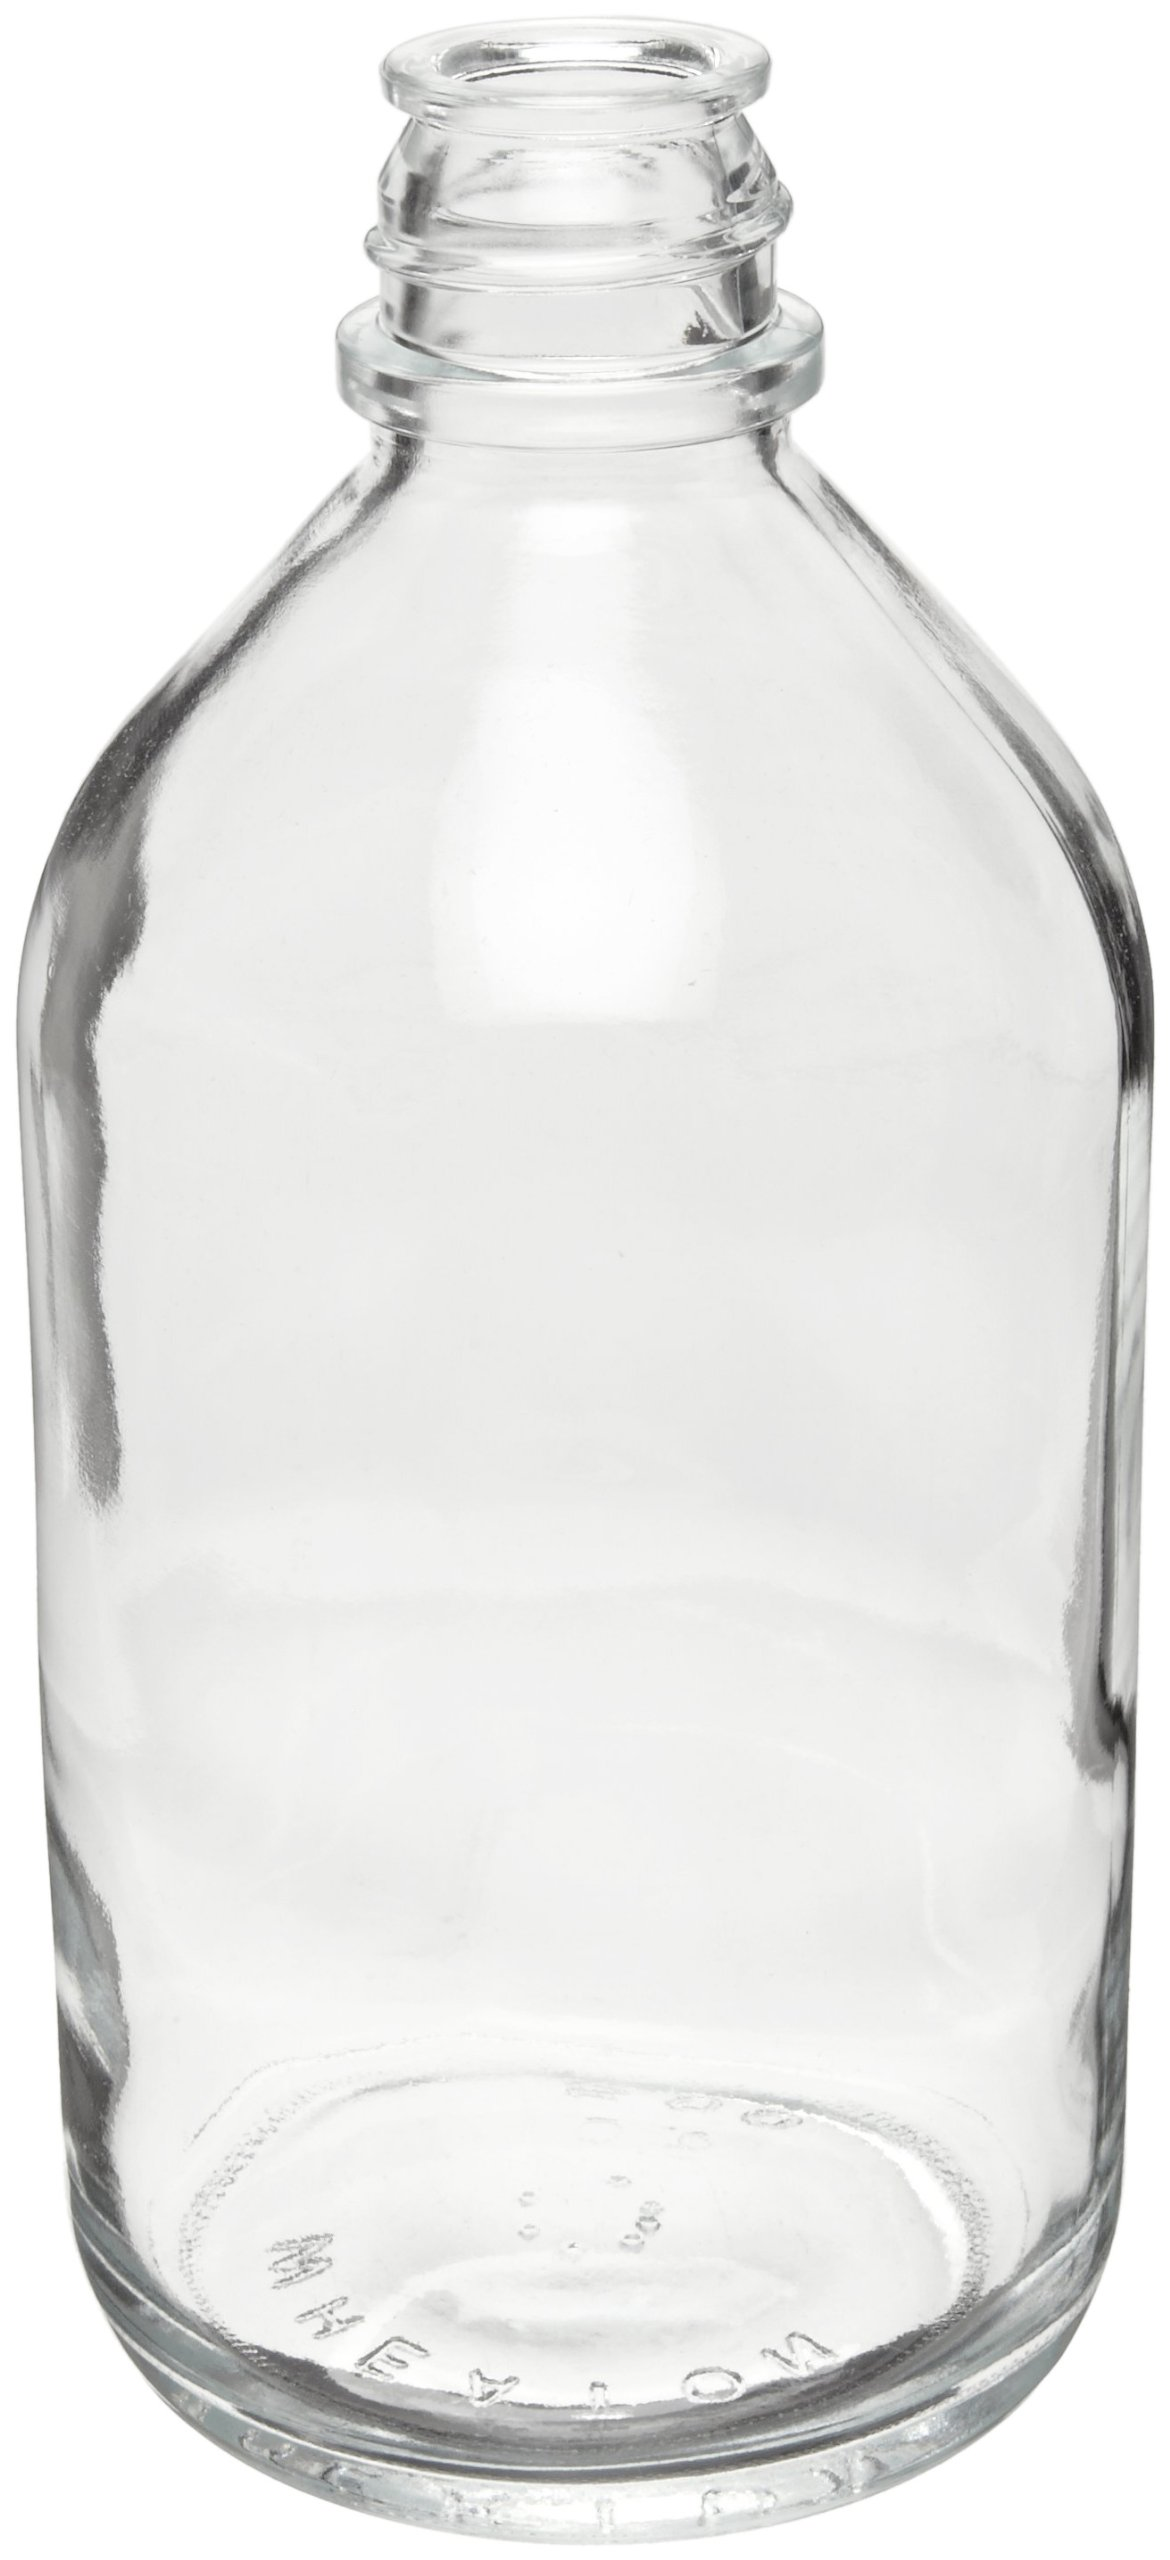 Wheaton 219419 Media Bottle, 500mL Clear Non-Graduated Without 33-430 Screw Cap, Autoclavable (Case of 24)